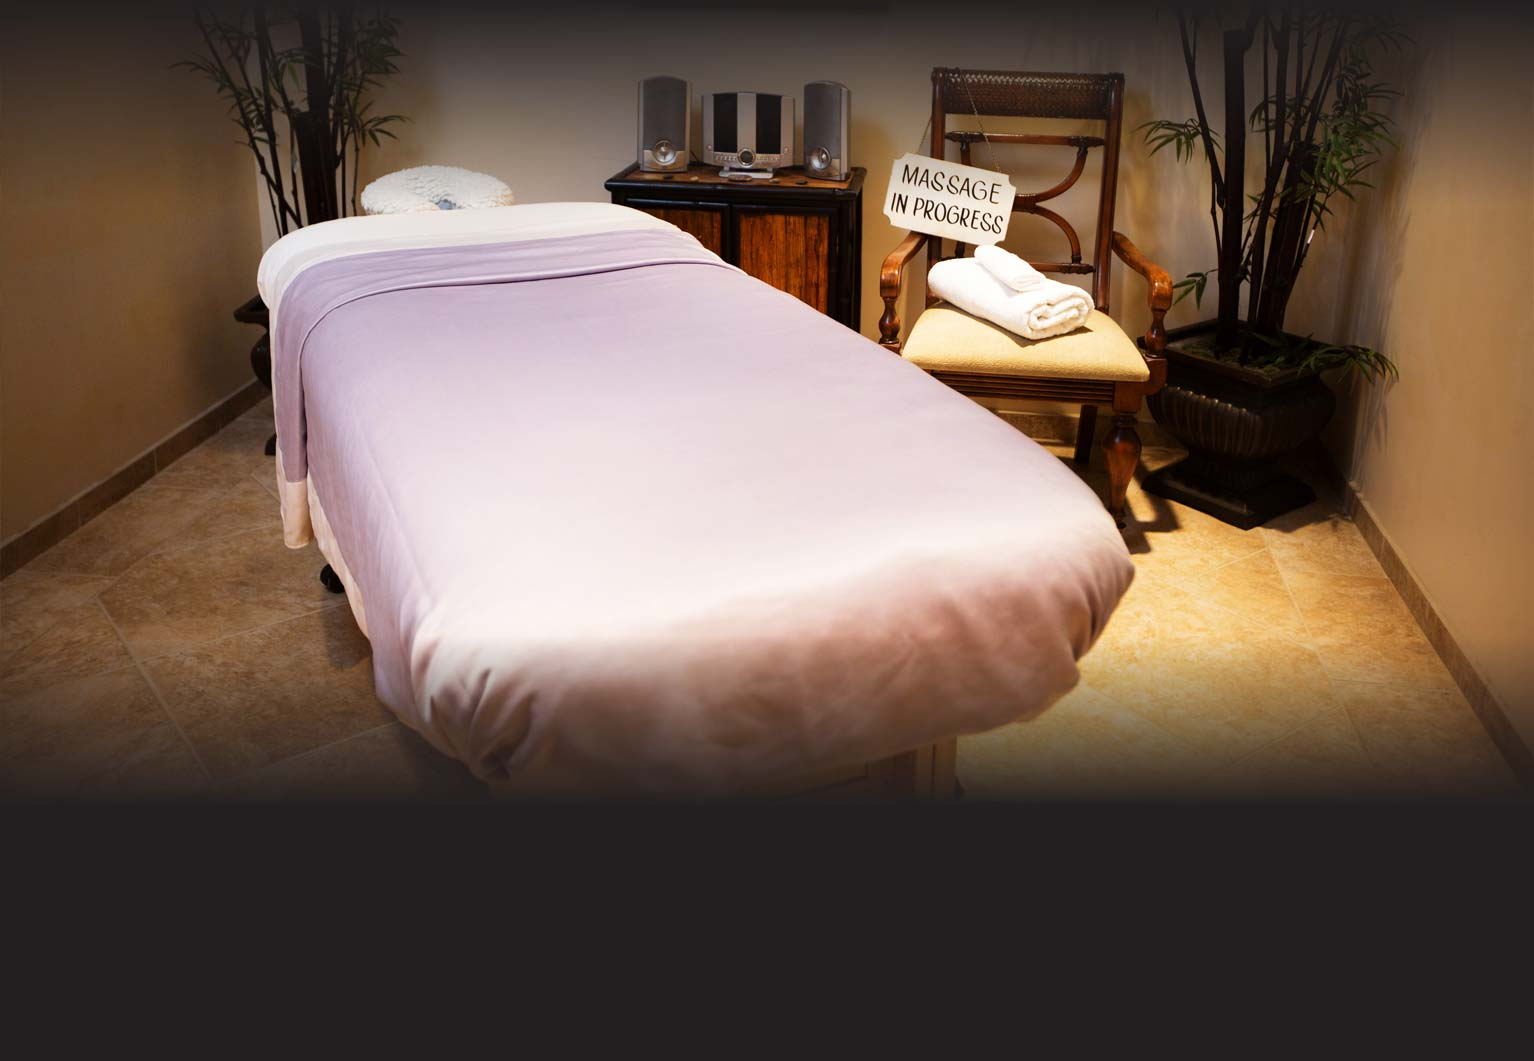 Futon Massage Massage Services Avila Golf And Country Club